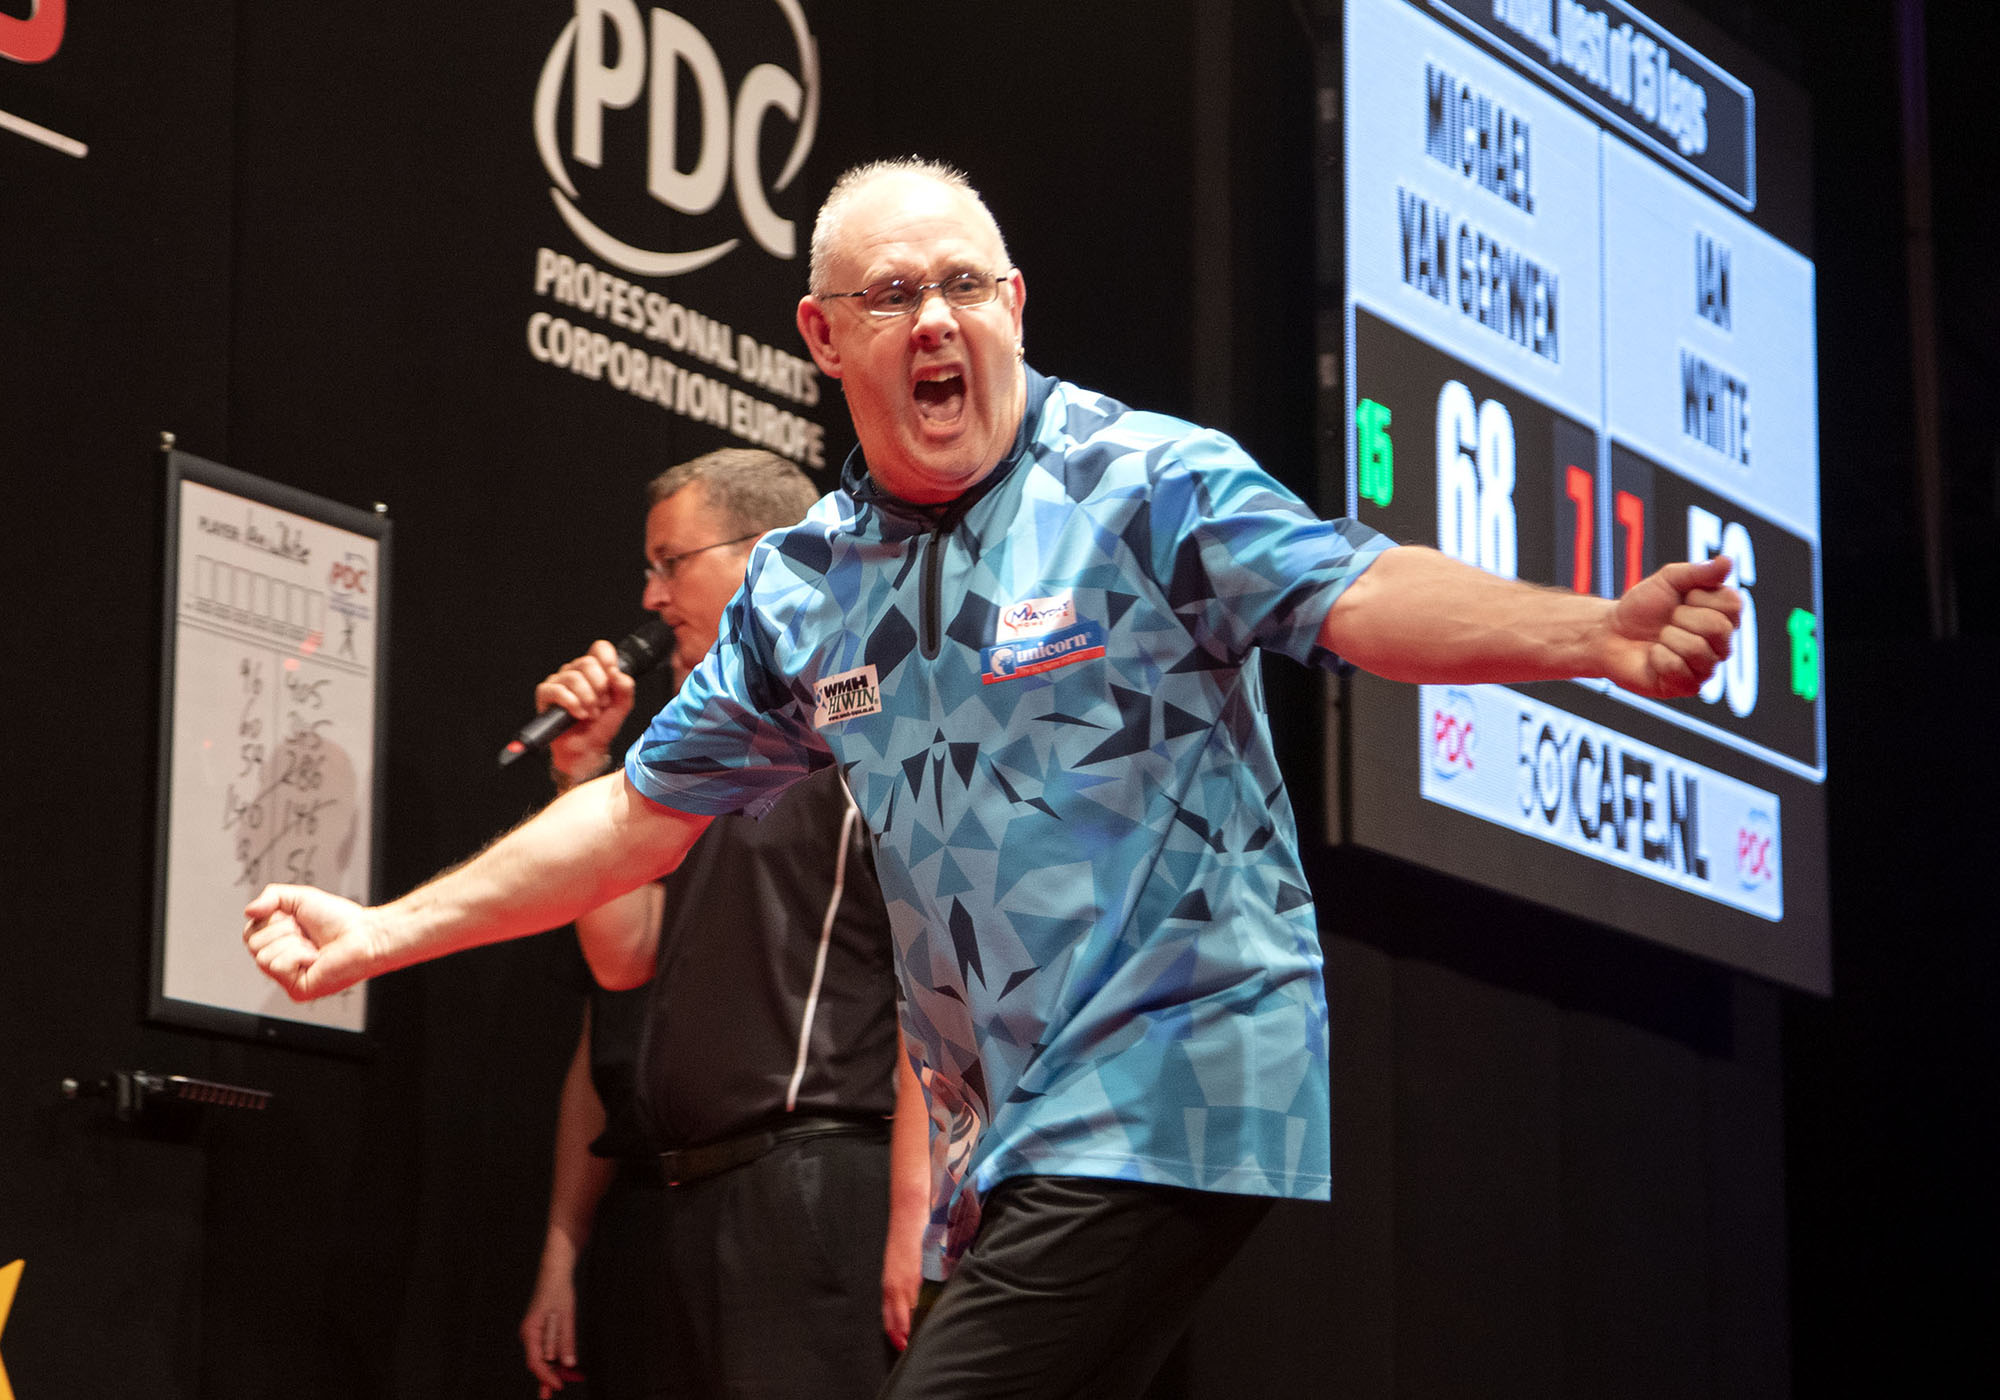 Ian White criticises 'hurtful' Dutch Darts Masters crowd after beating Michael van Gerwen for title